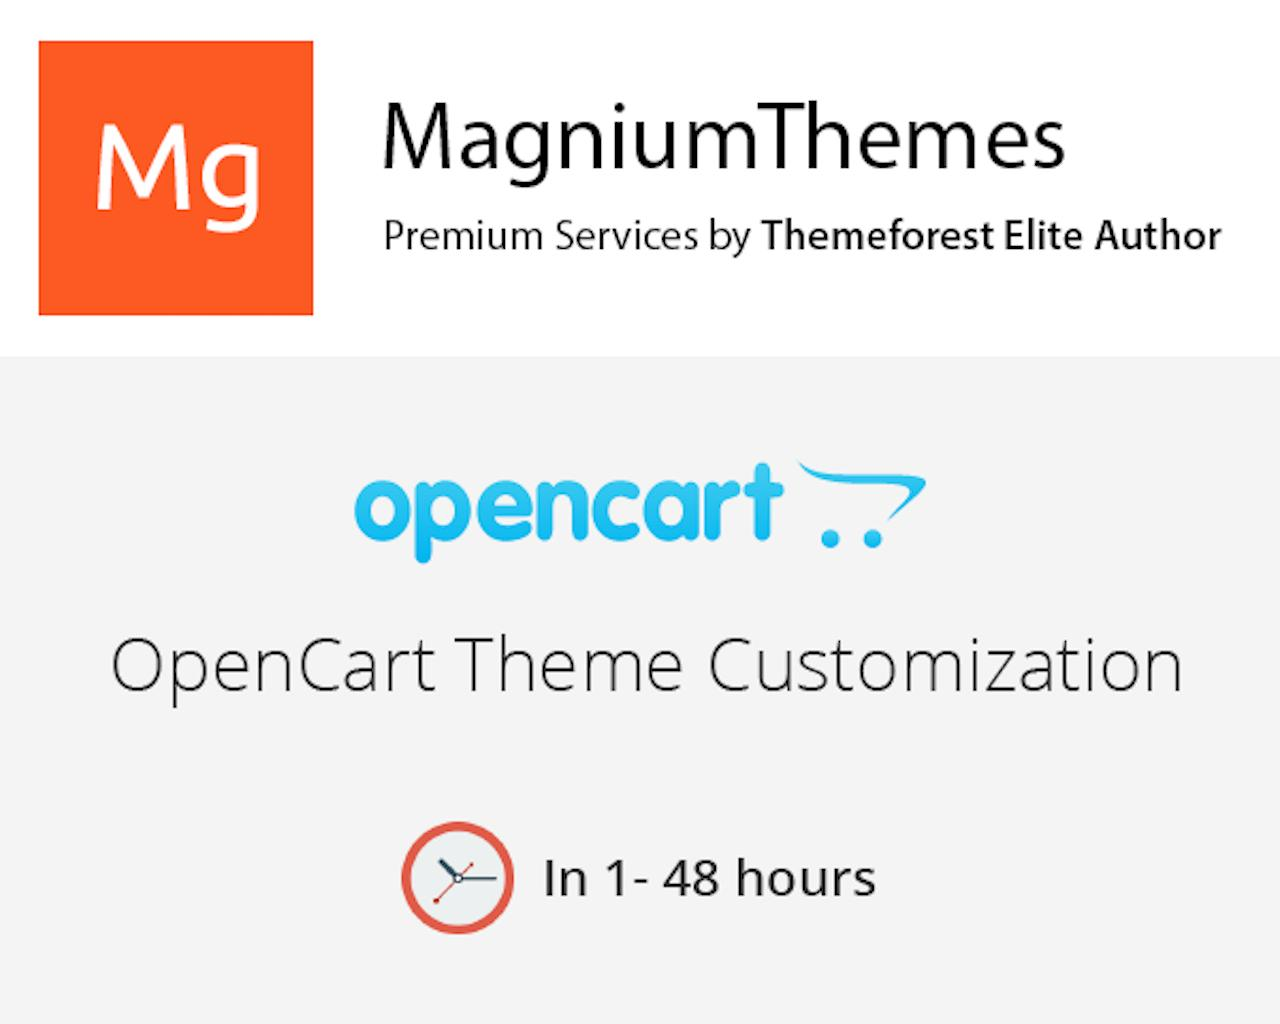 Premium OpenCart Theme Customization (colors, features, layouts, etc) by Elite Author Team by dedalx - 105779